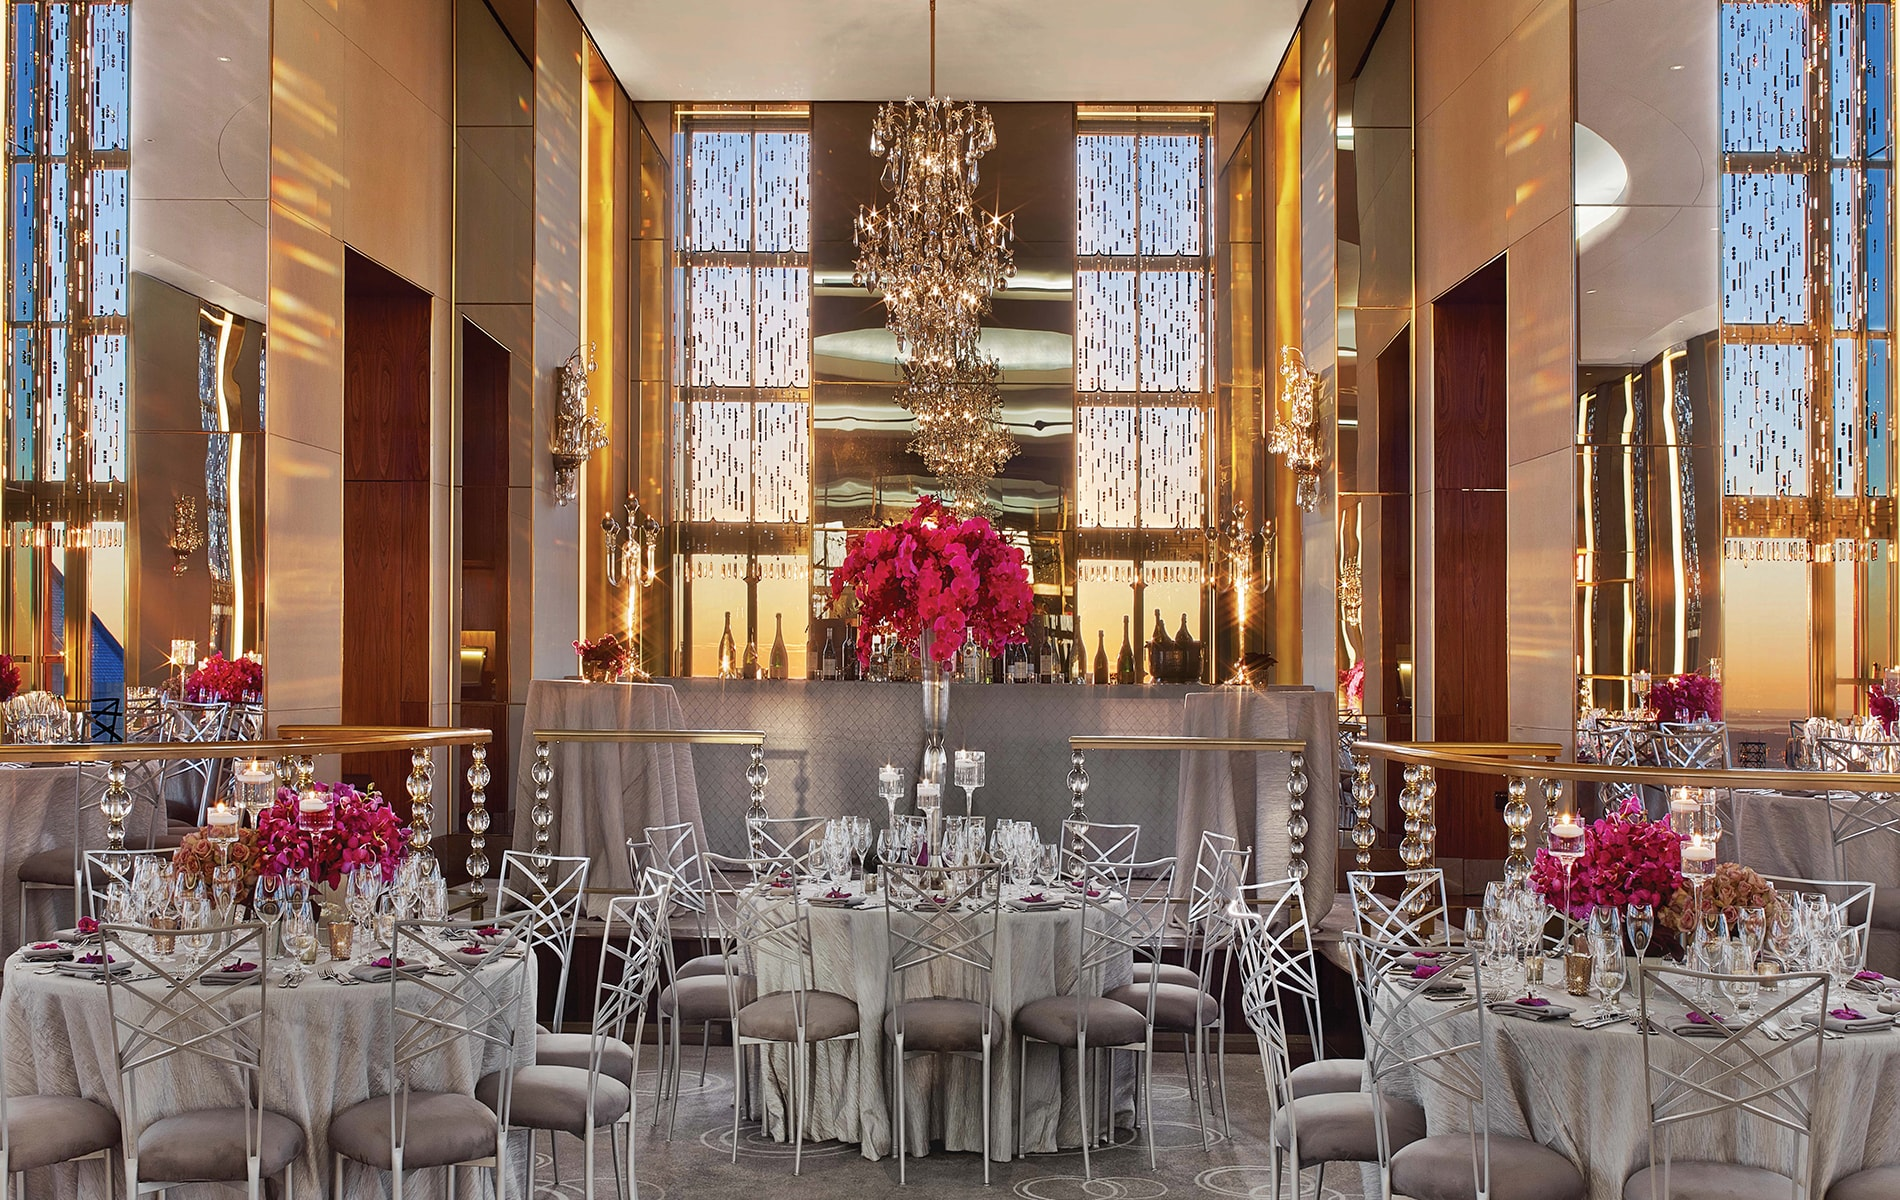 The Rainbow Room on the sixty-fifth floor at Rockefeller Center has been one of New York City's iconic event venues since 1934 and underwent a massive renovation before reopening in 2014.